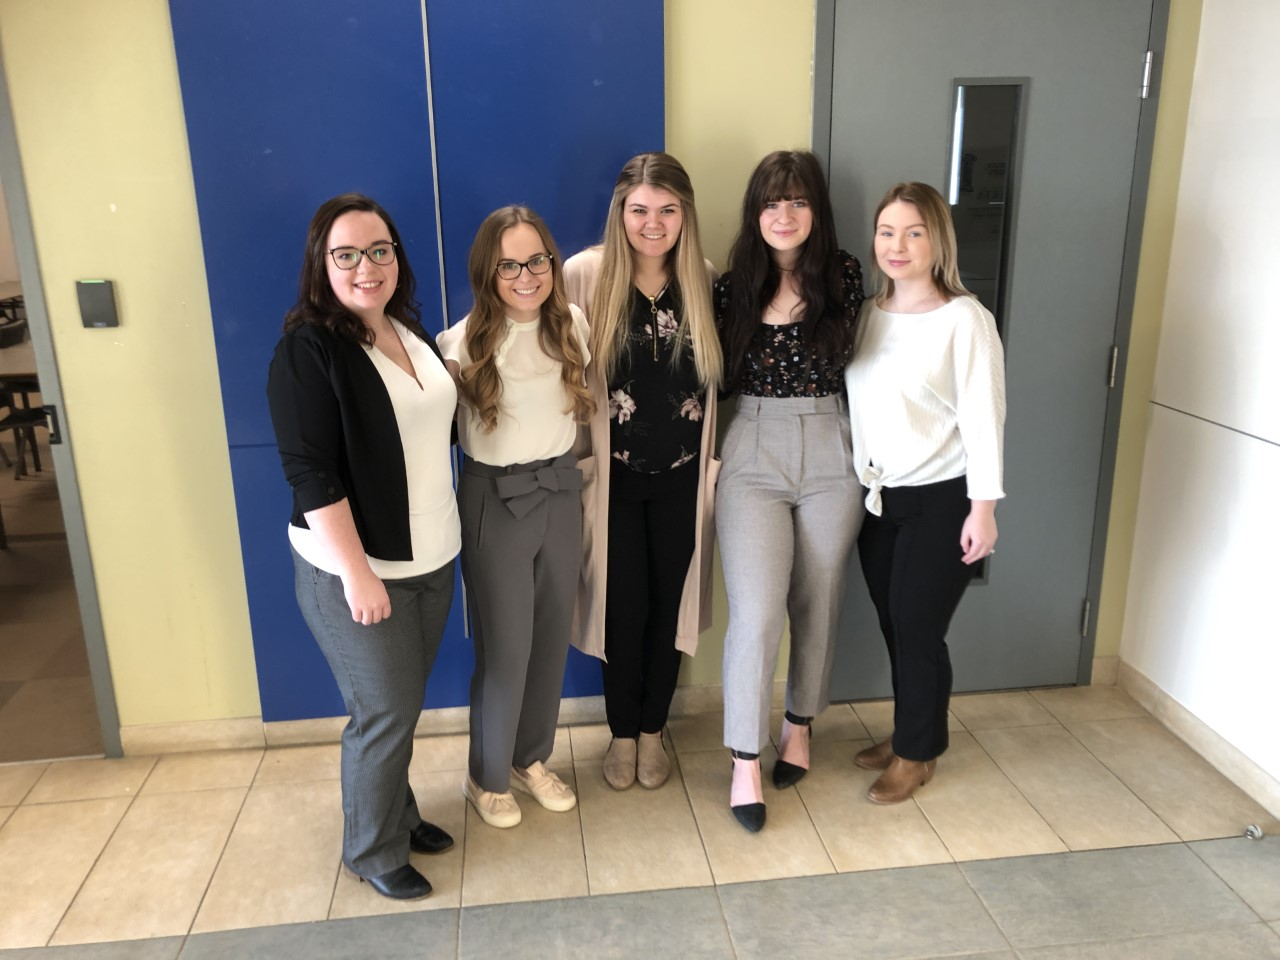 Education Students who did practicum in Anzac (winter 2020) Left To Right- Jenna Majeau, Emily Burden, Taylor Bowman, Brittany Brake, Courtney Bursey